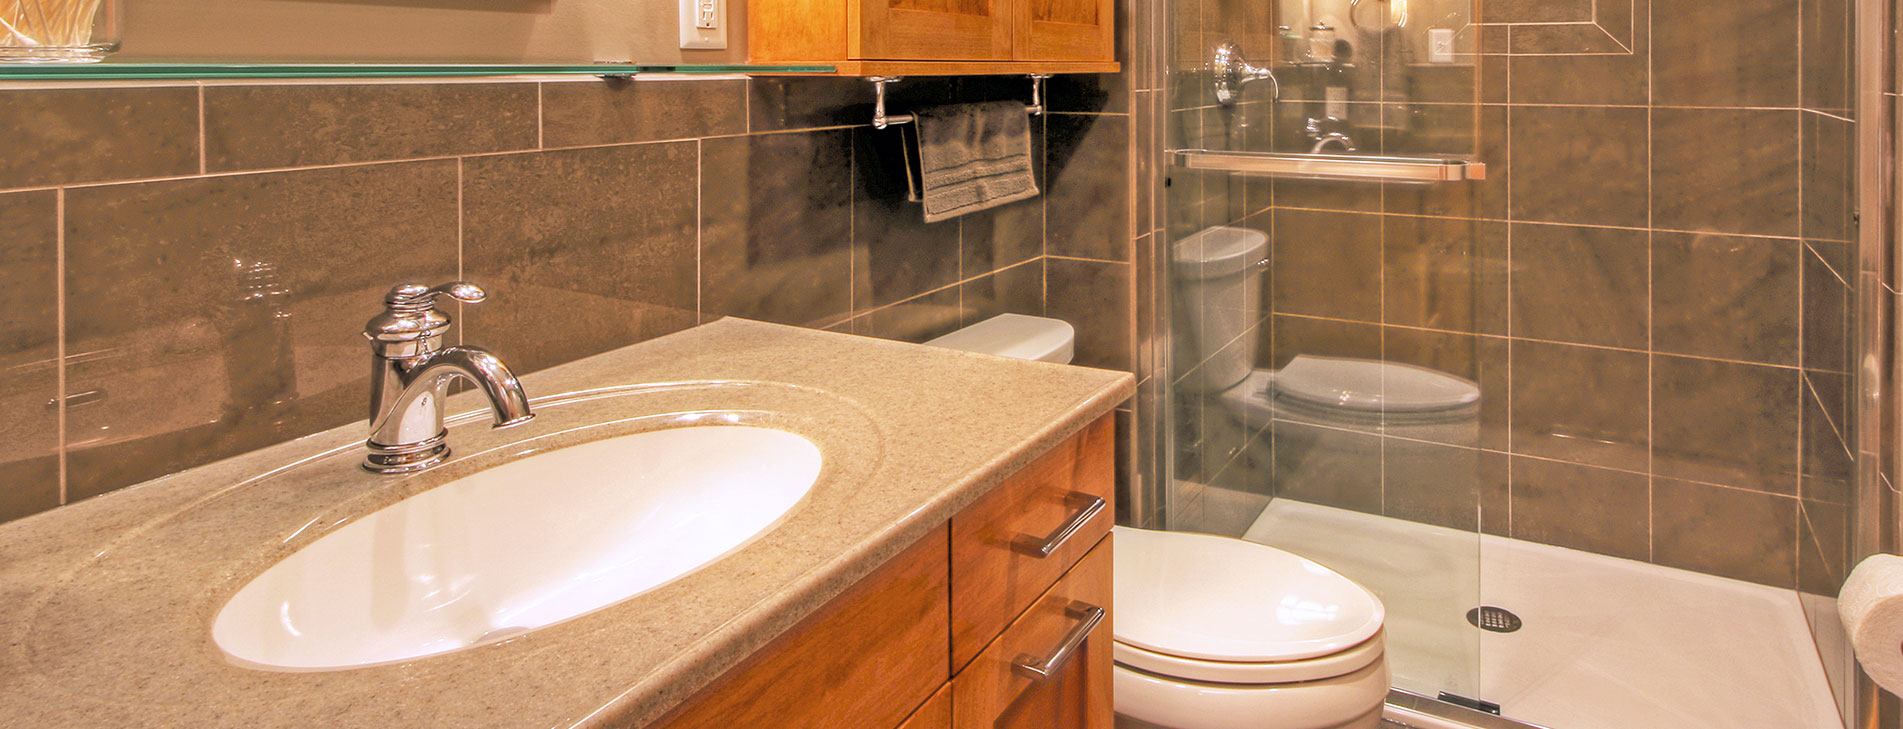 Reliable Renovations Online | Home Remodeling and ...